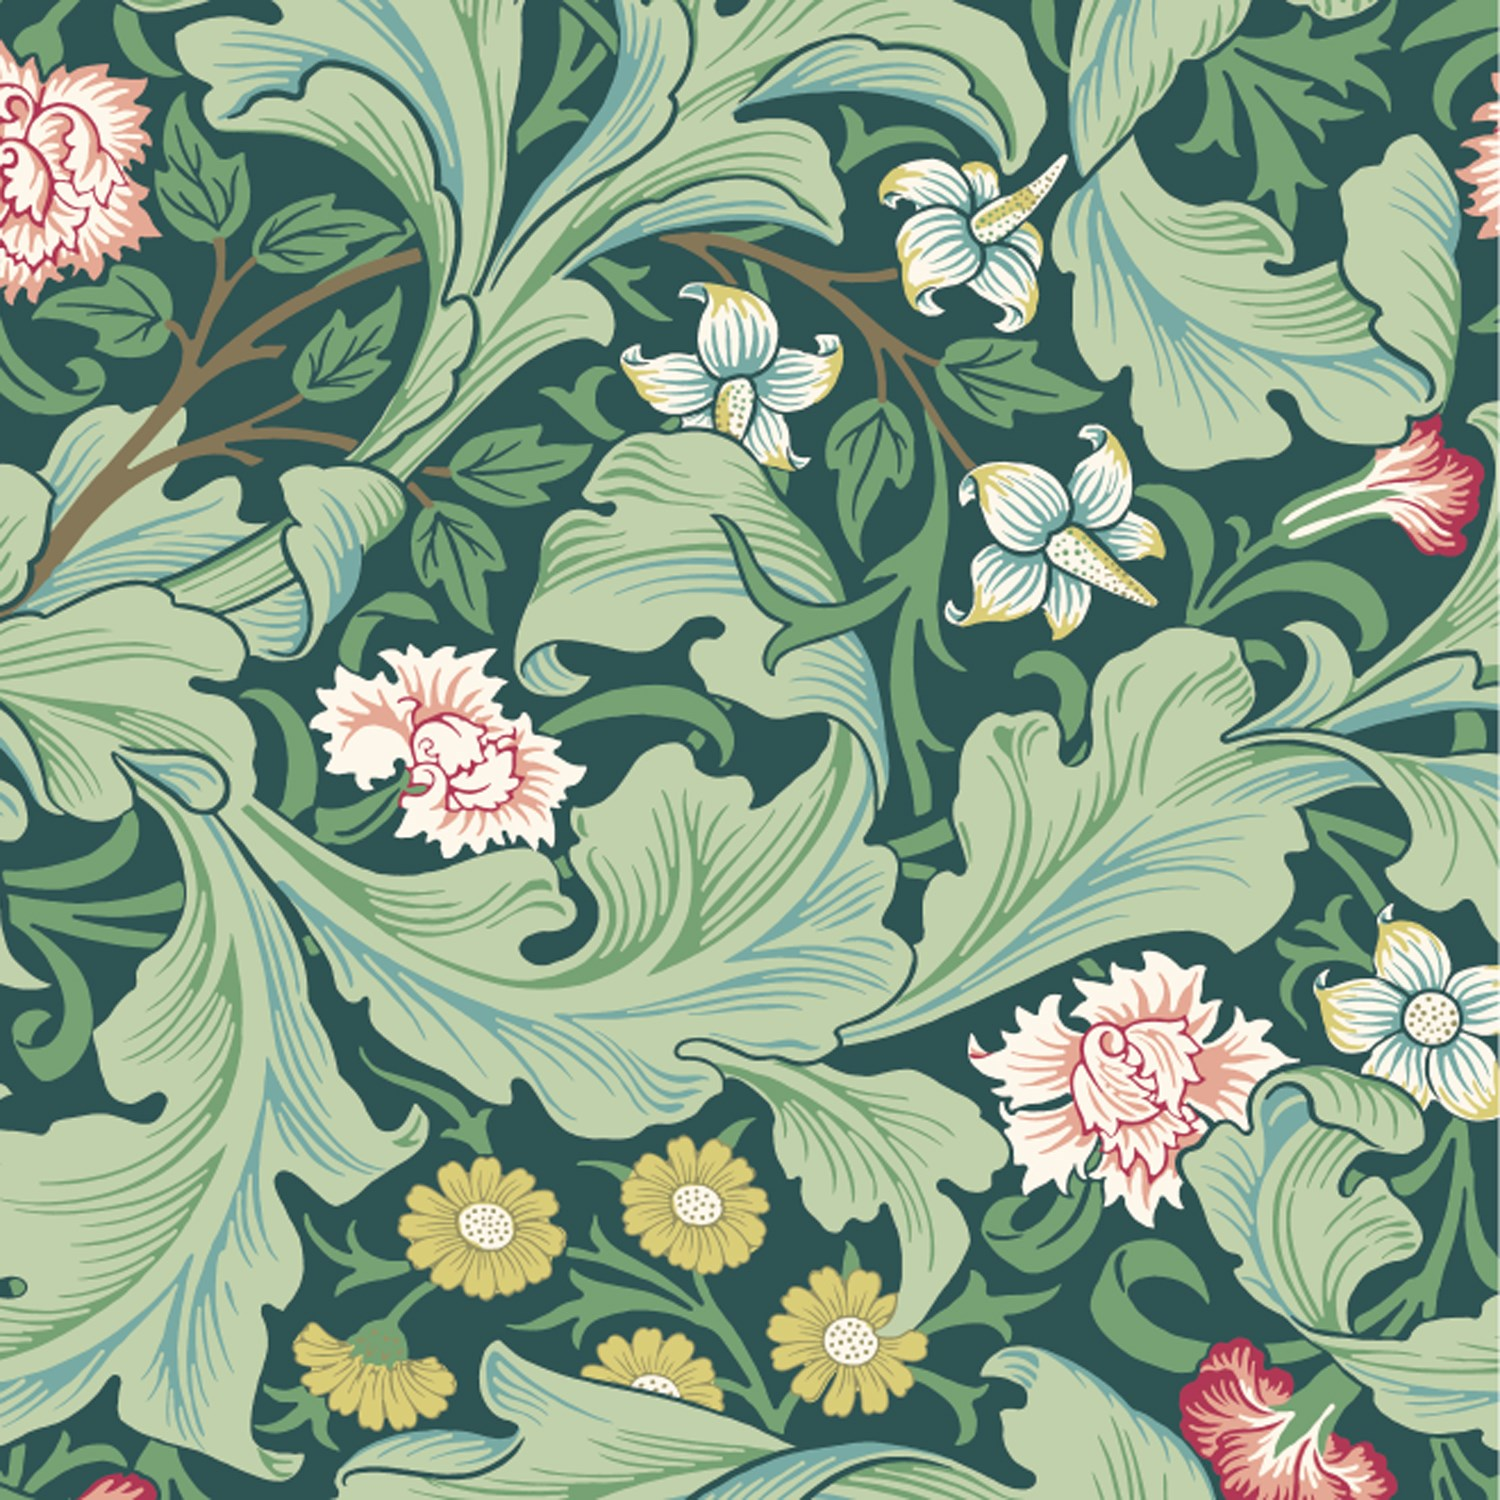 mt x William Morris - MT Masking